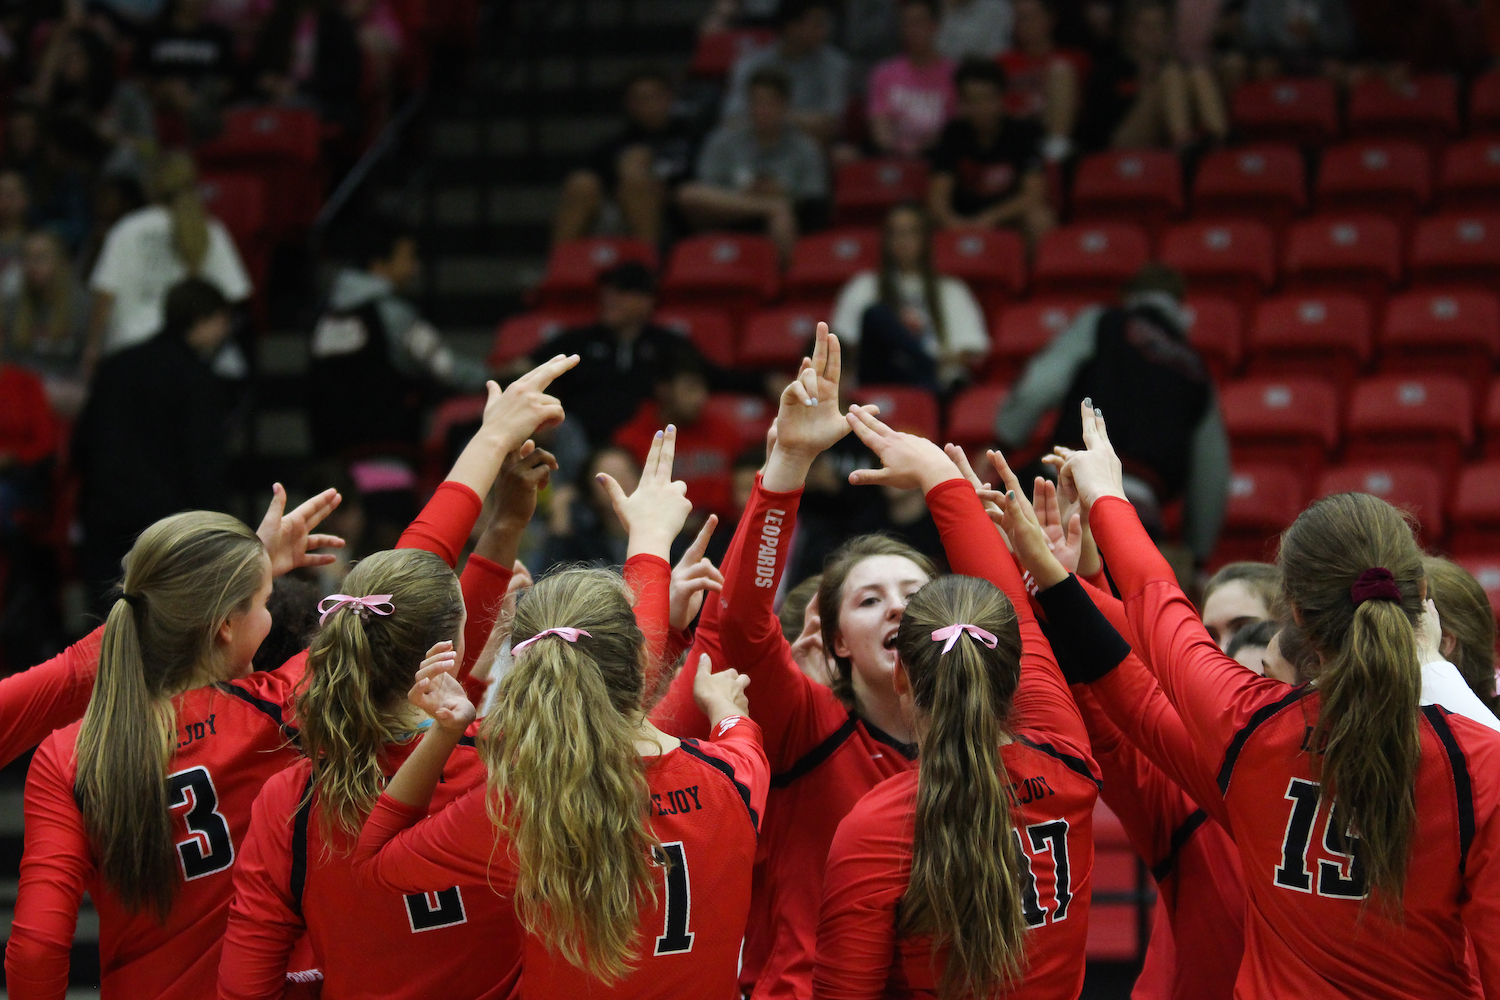 The volleyball program seeks its seventh state championship in this year's playoff run.